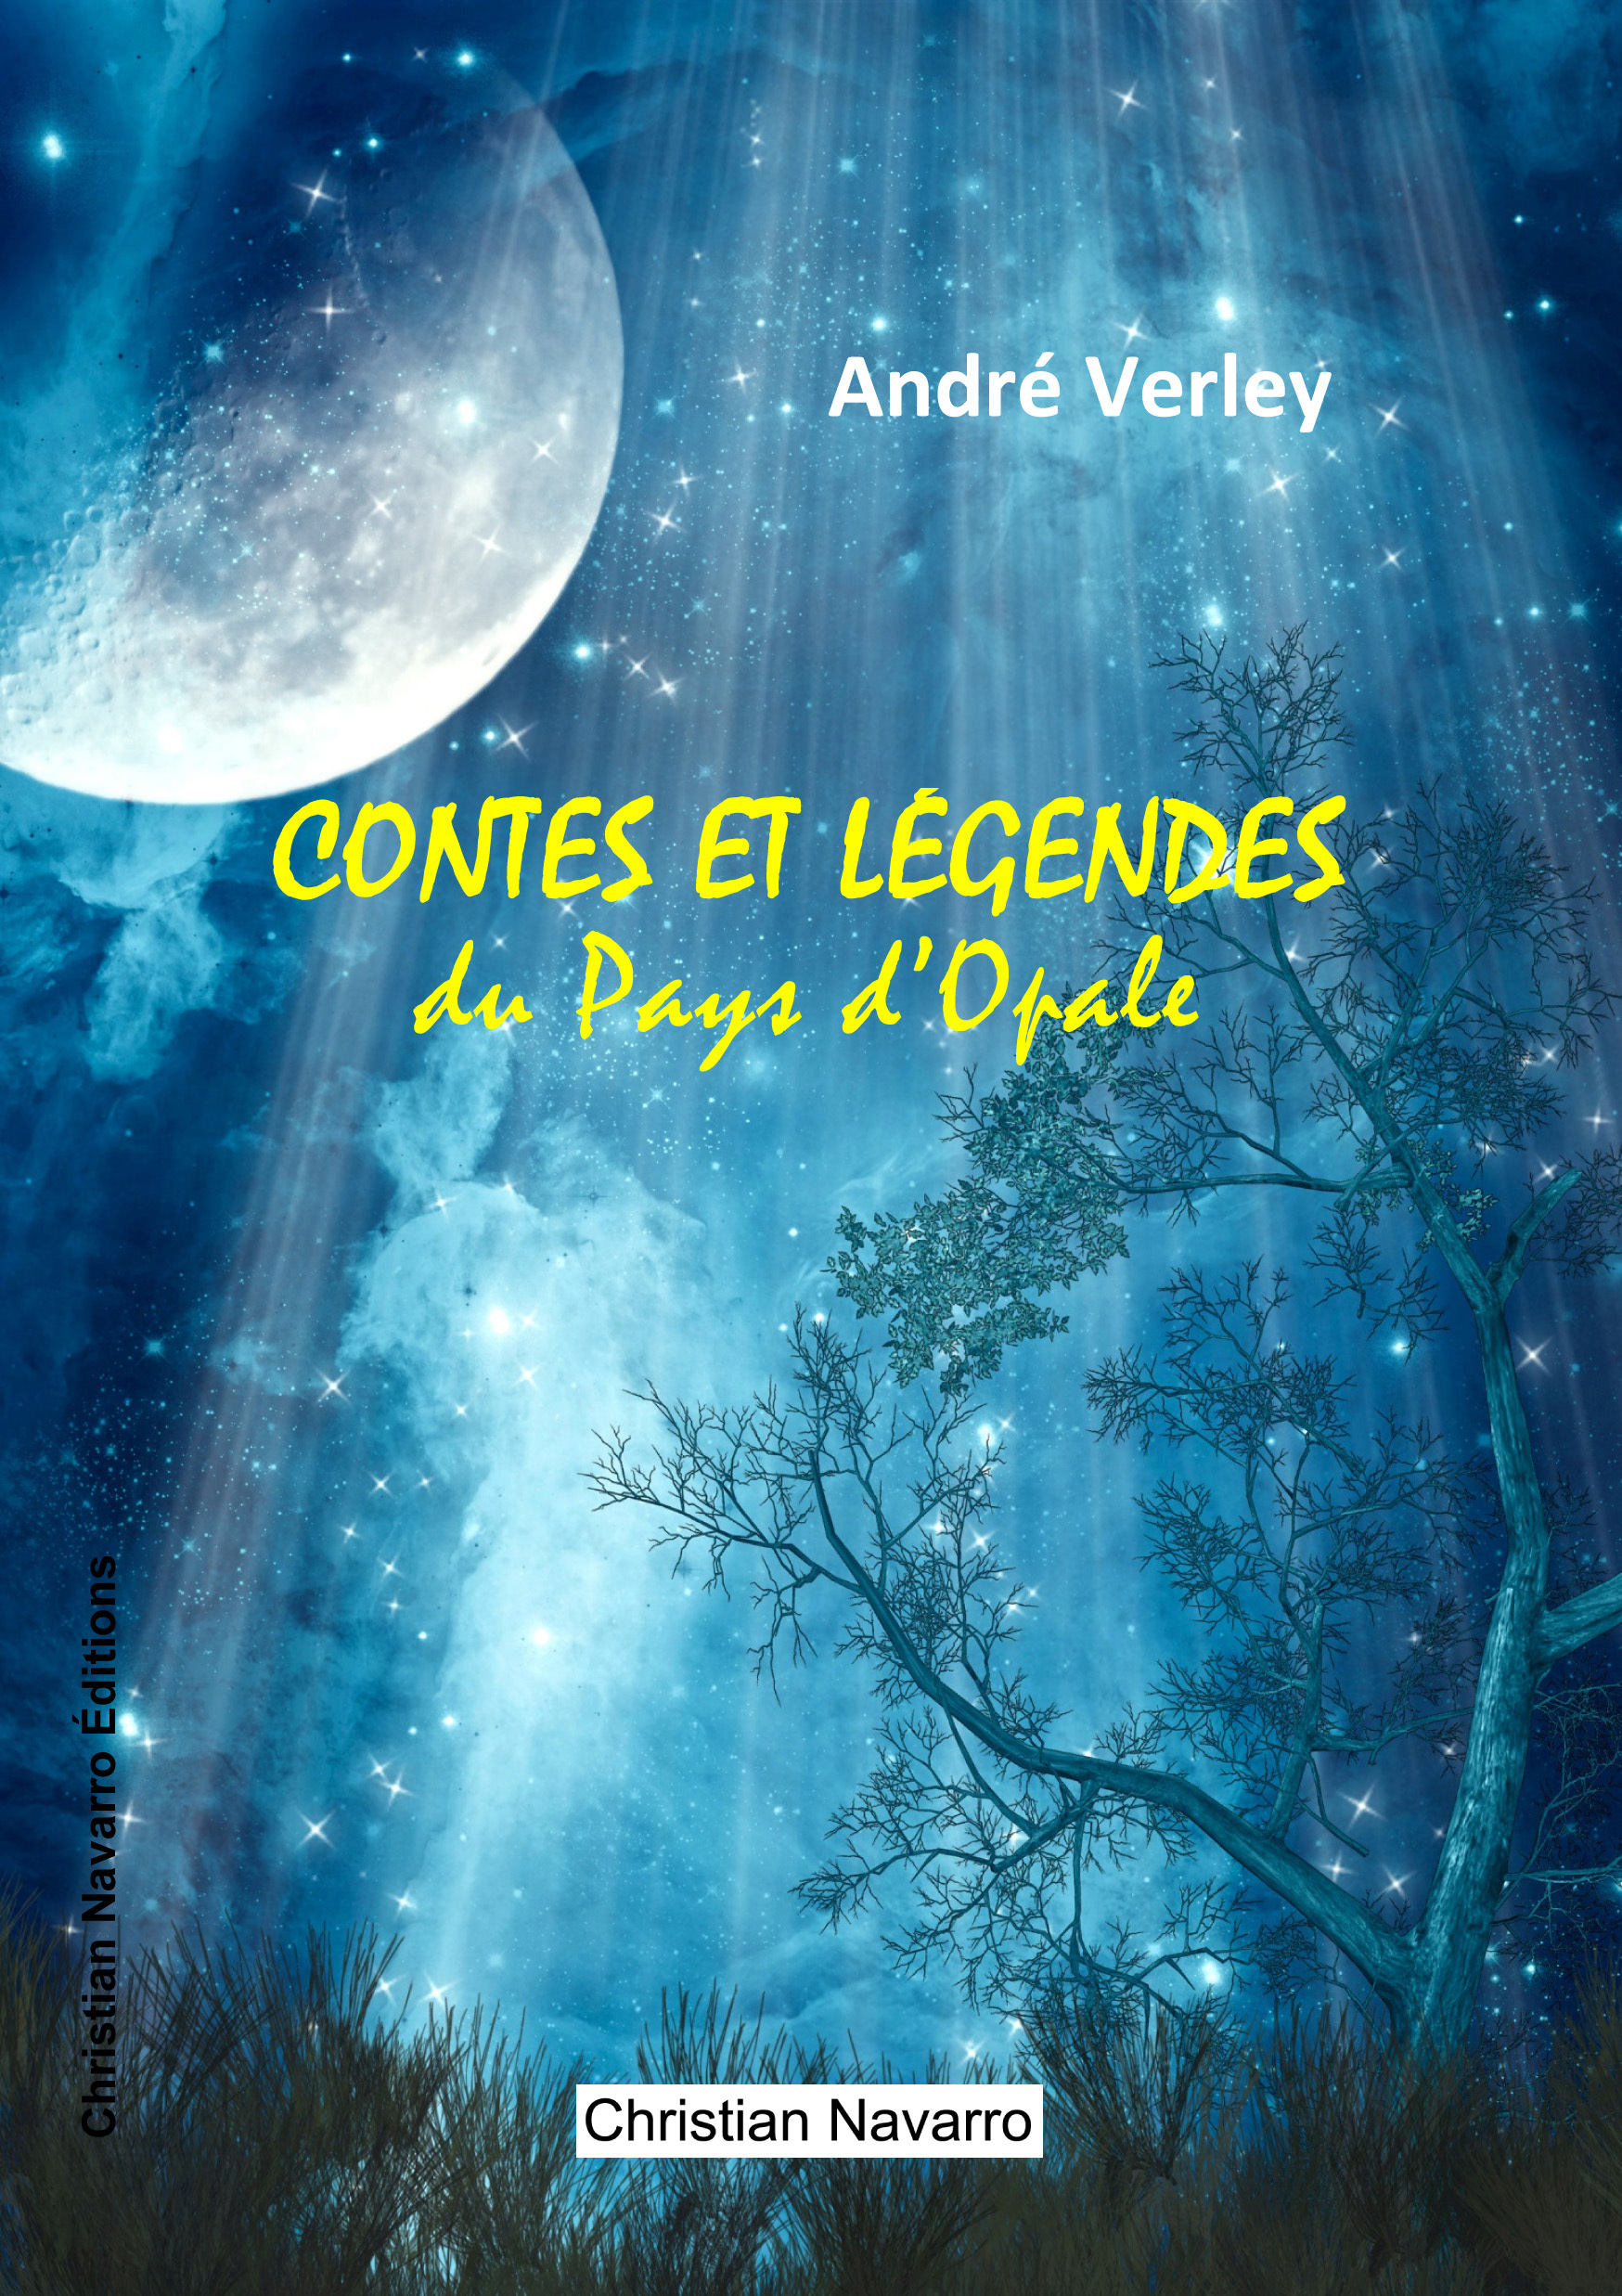 Contes_et_Legendes_du_Pays_dOpale_-_Couverture_officielle_Face_Site